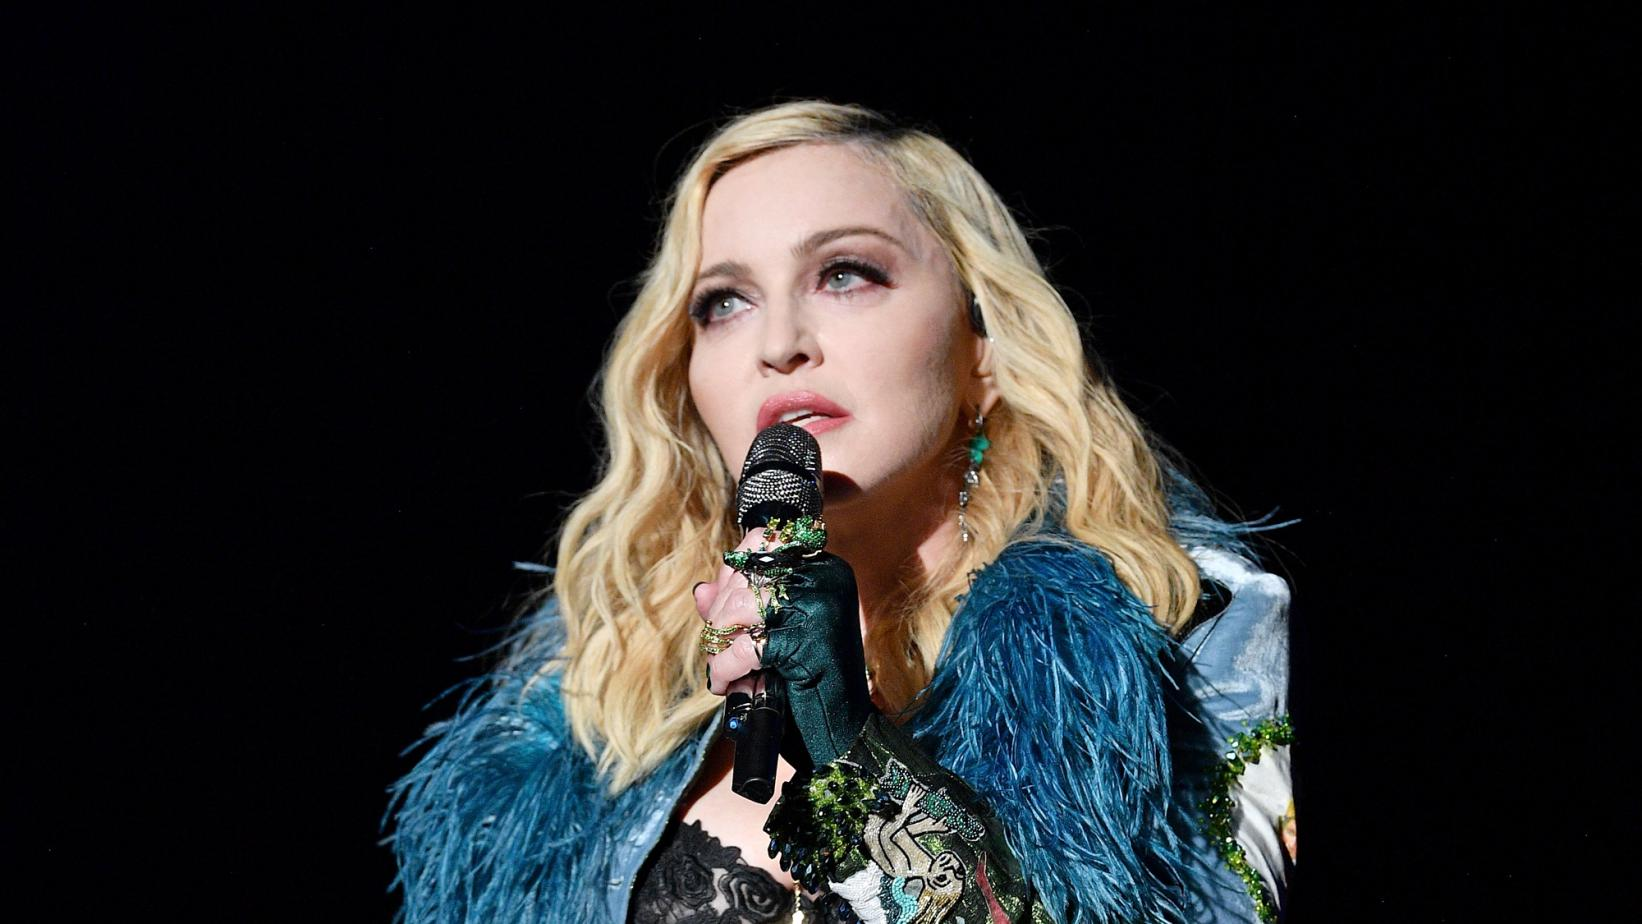 Madonna Is Dropping A Whole Bag Of $5 Million On Her Performance At The Billboard Awards - Some People Say That's A Waste Of Money